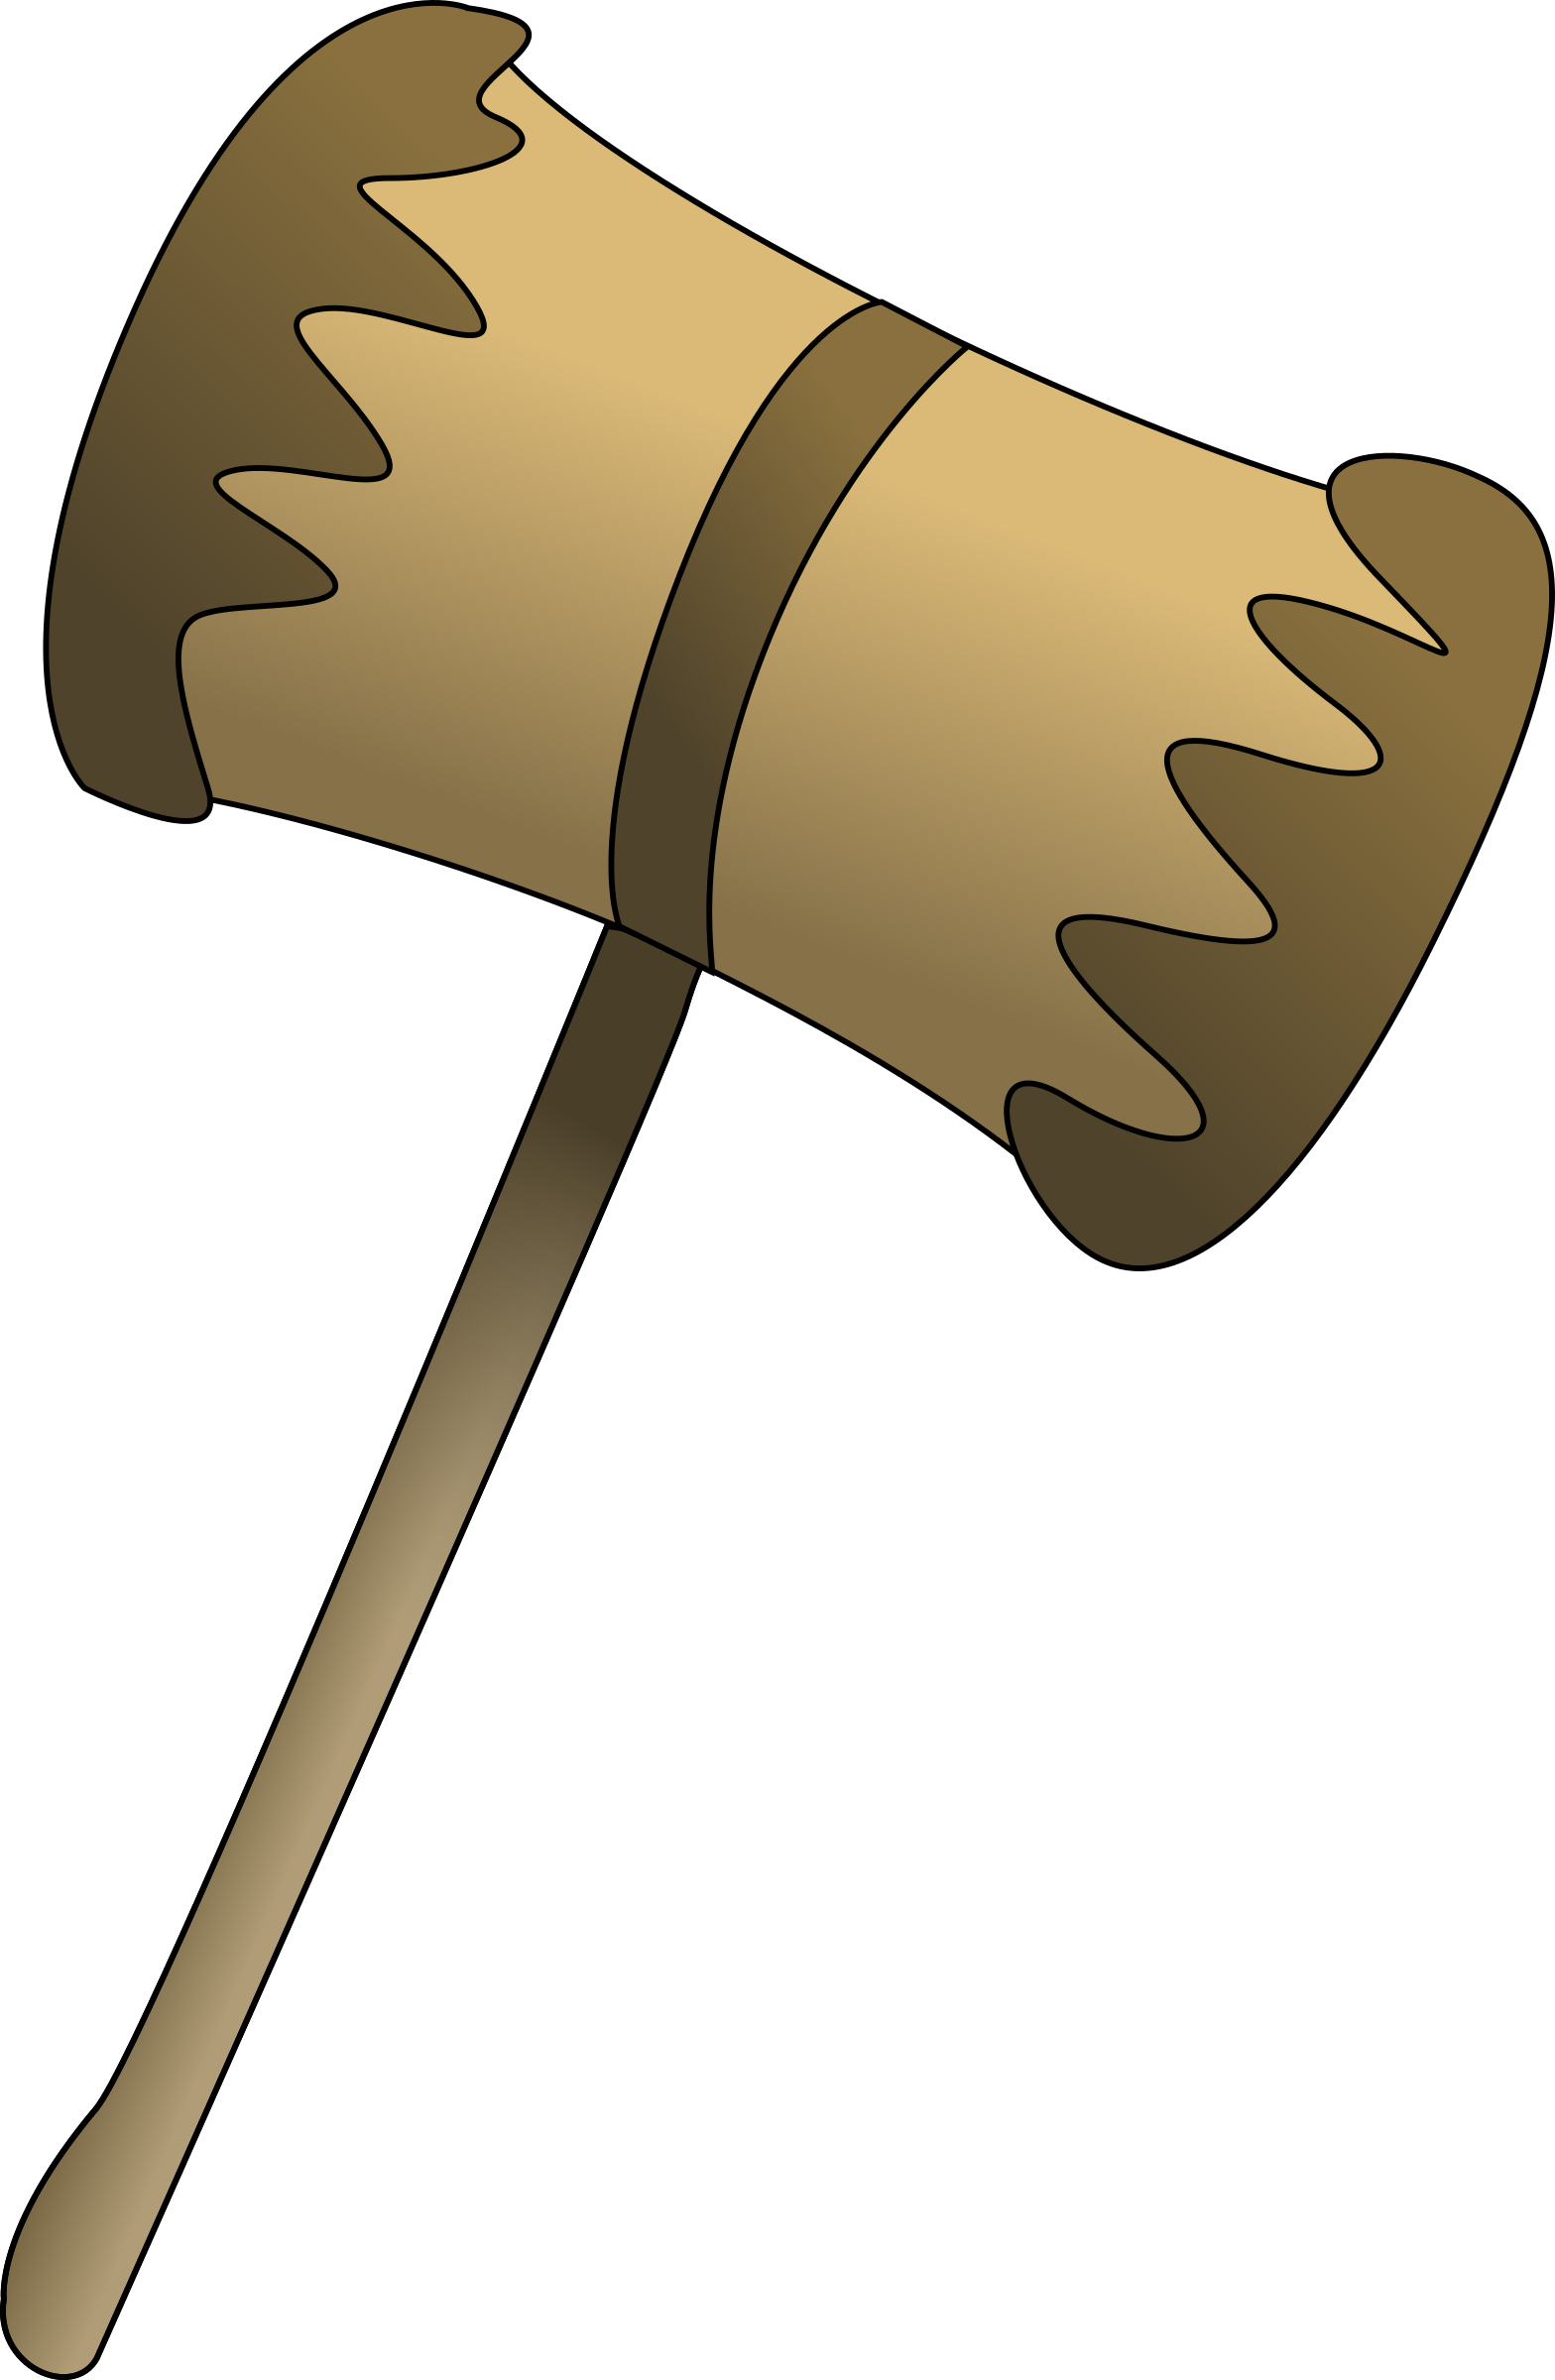 Wooden Mallet by bpcomp